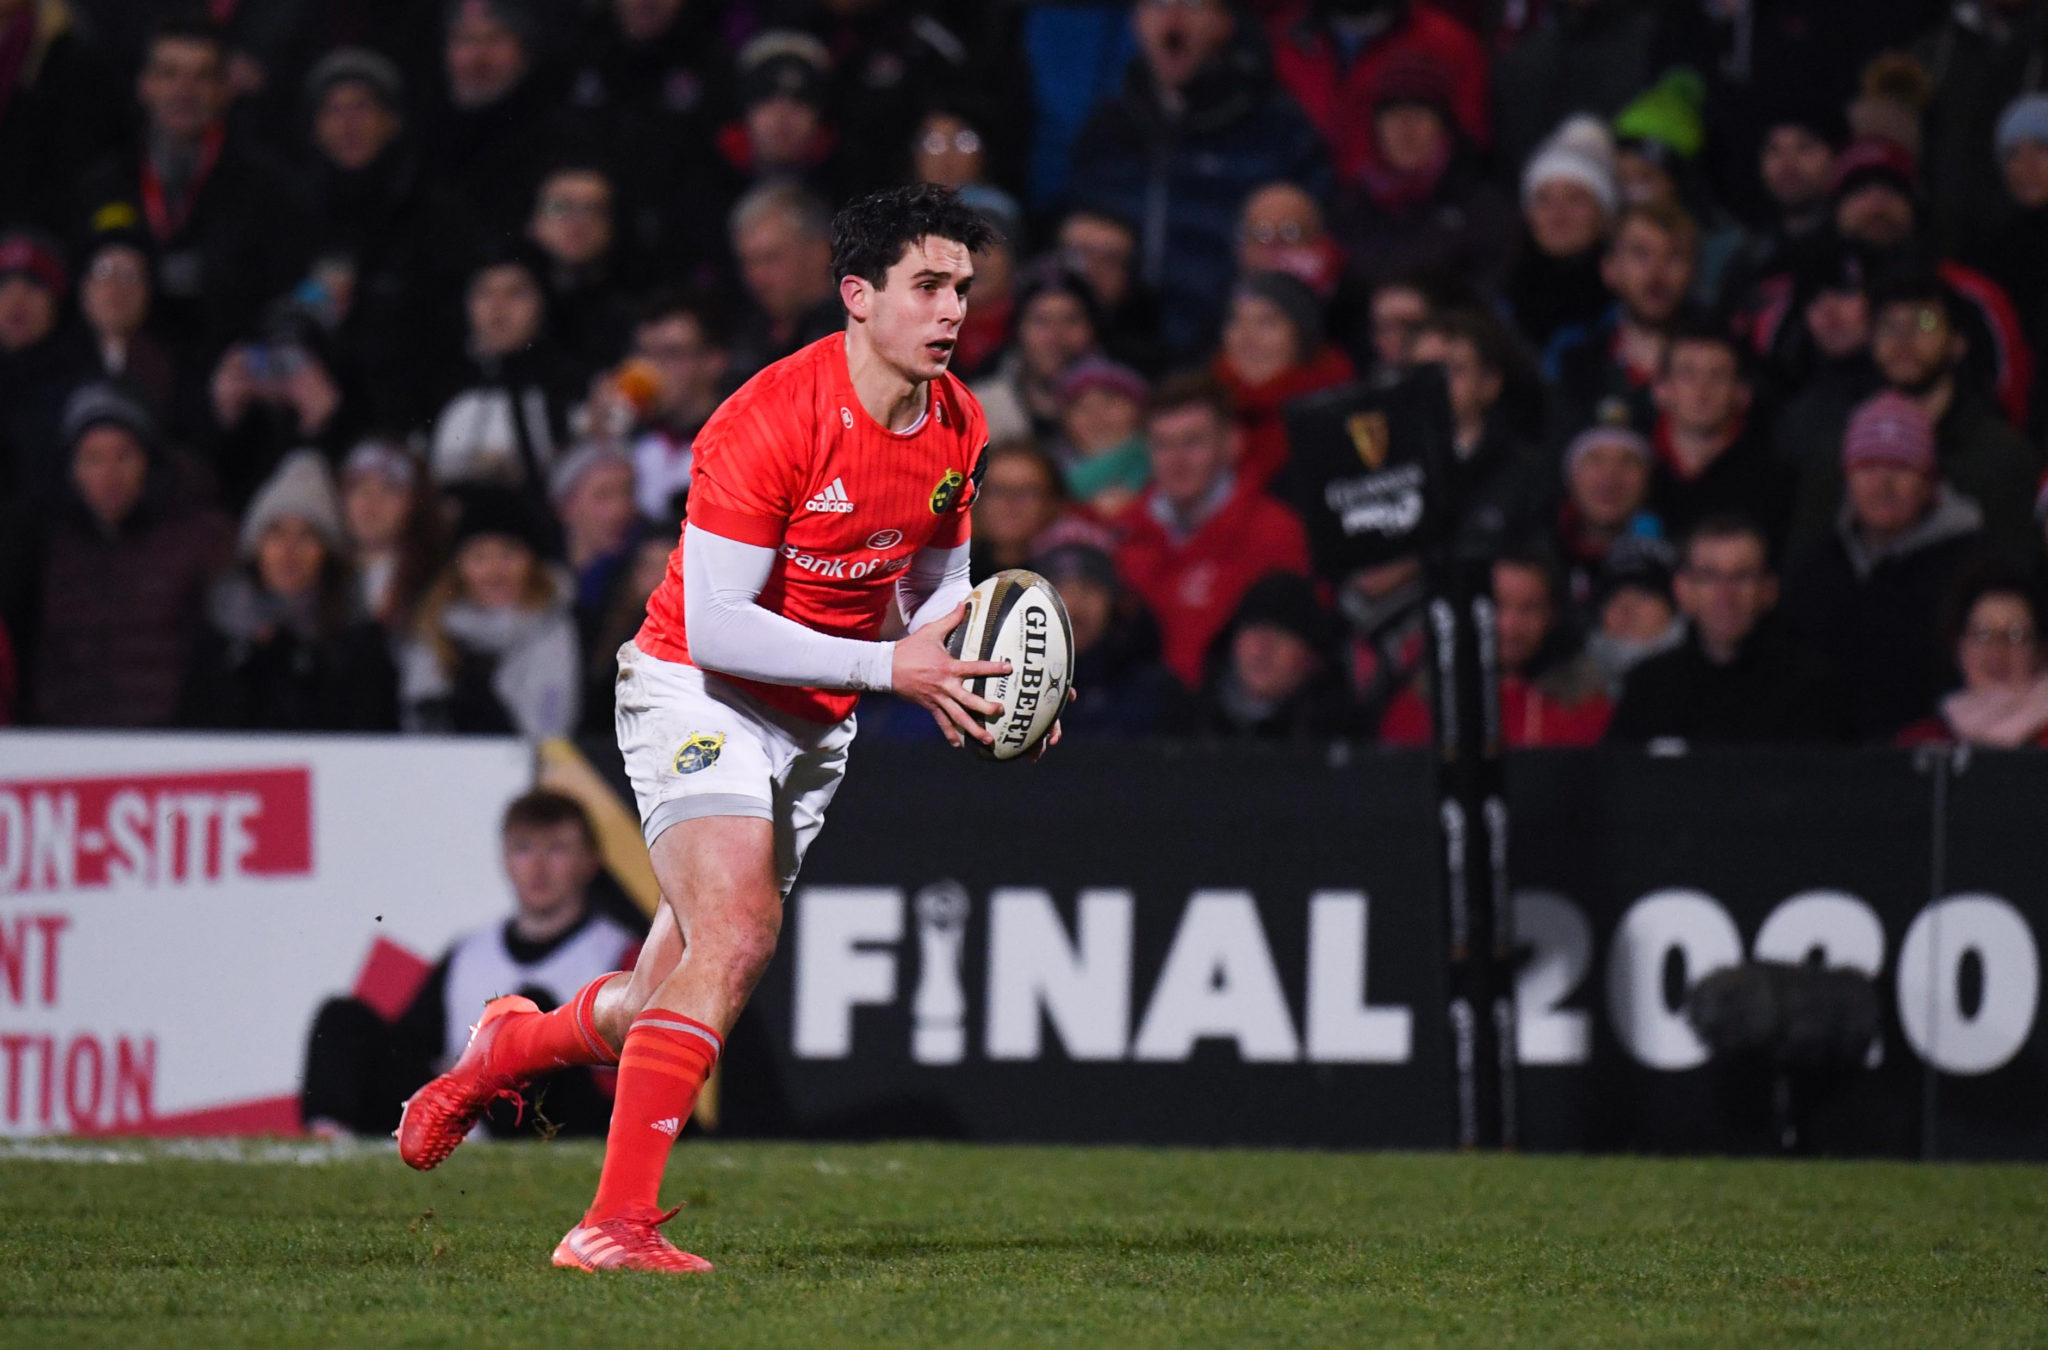 Joey Carbery carries the ball forward for Munster.